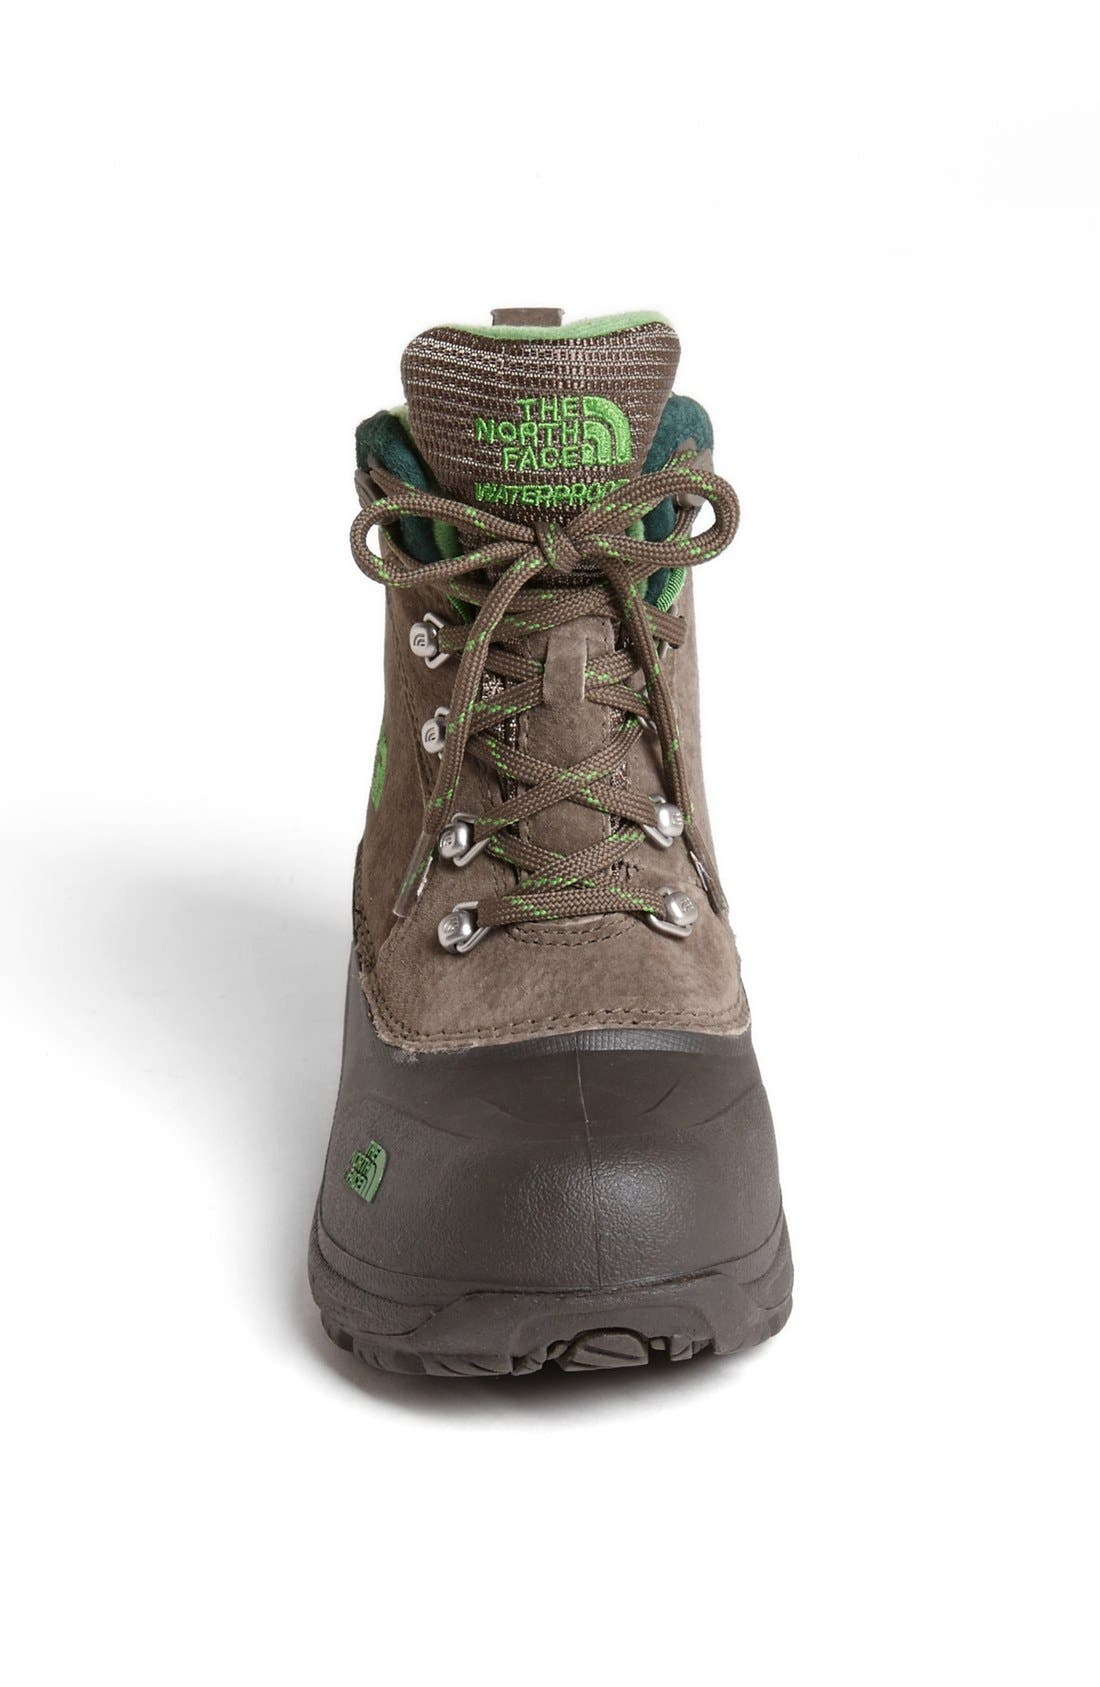 Alternate Image 3  - The North Face 'Chilkats' Lace Up Waterproof Snow Boot (Toddler, Little Kid & Big Kid)